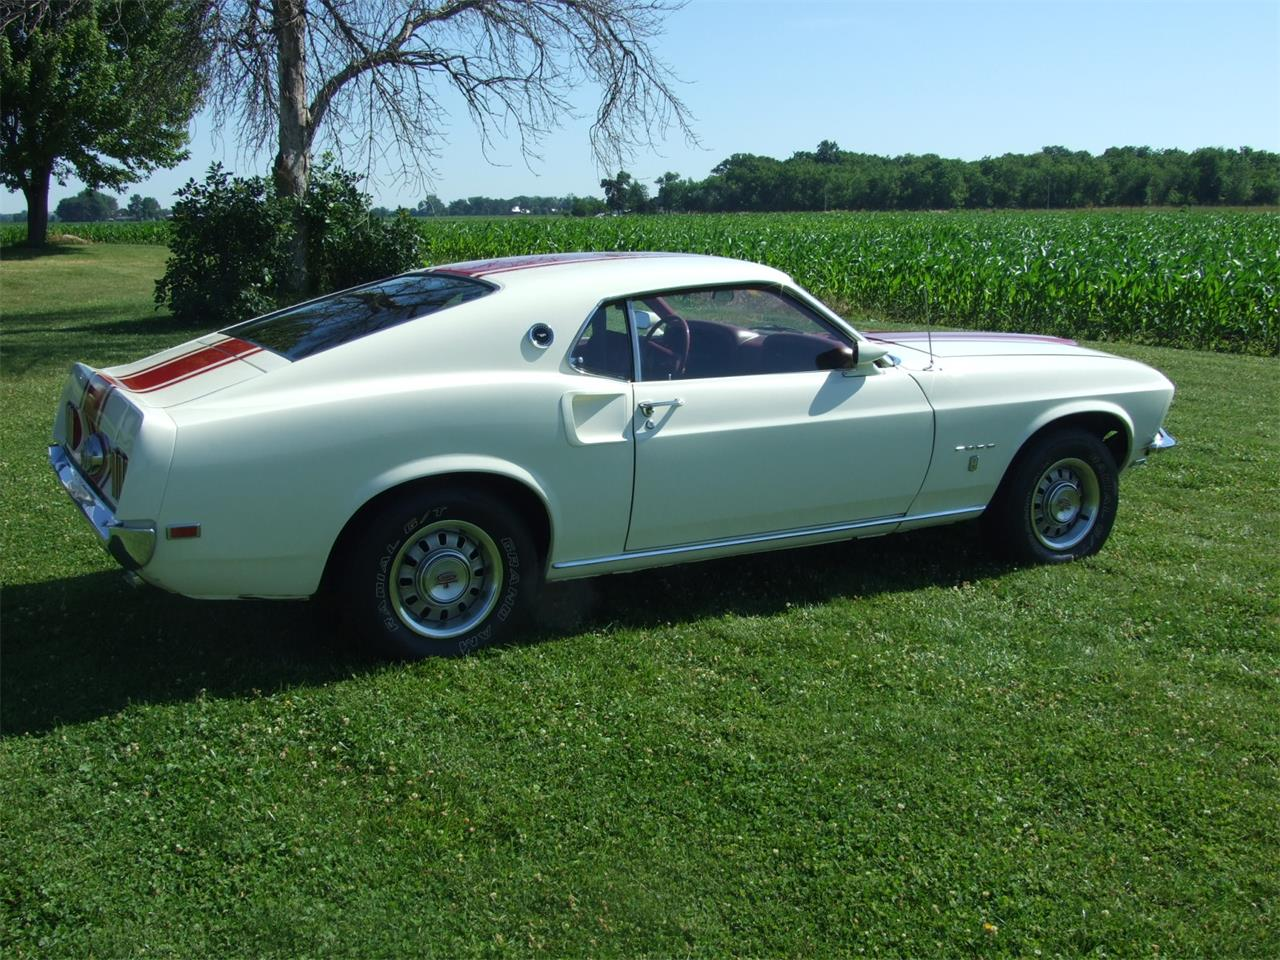 Large Picture of '69 Mustang - $34,500.00 Offered by Auto Connection, Inc. - JKJU